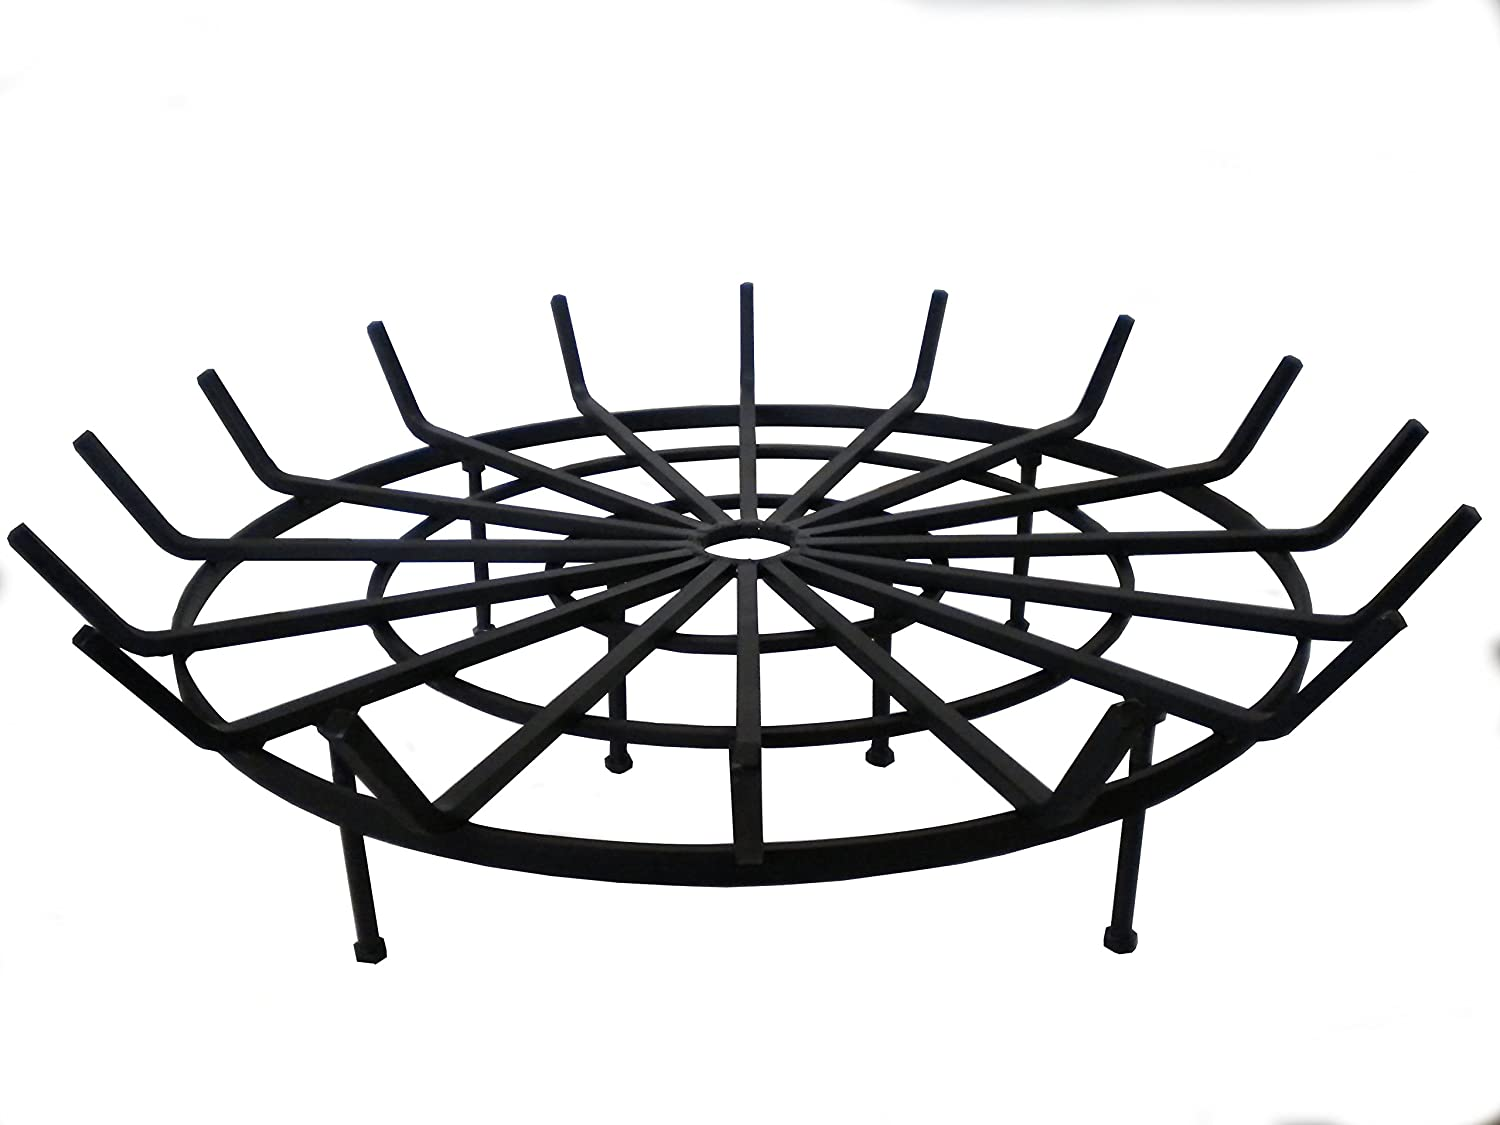 B M SALES Round Spider Grate for Outdoor Fire Pit 40 Diameter 6 Legs